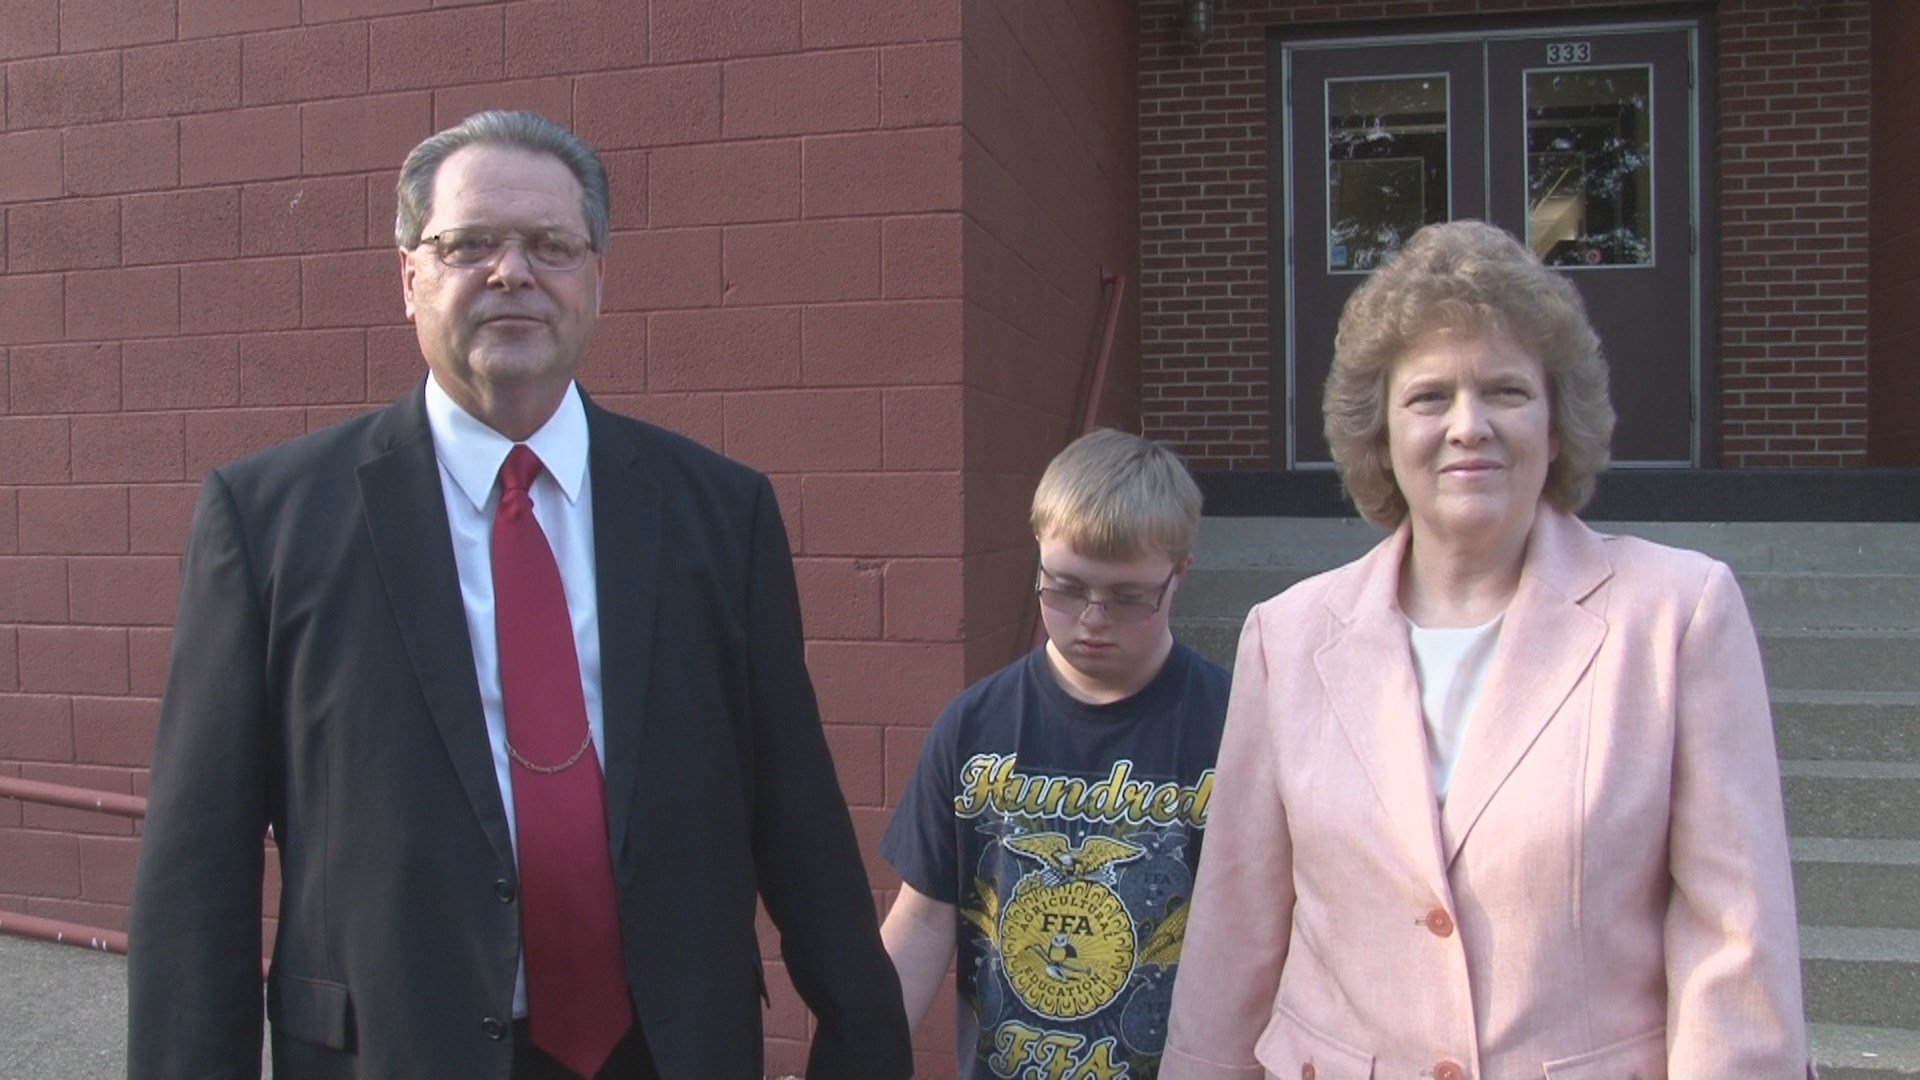 The Wetzel County Board of Education informed 17-year-old Roy Stevens, a junior at Hundred High School, that he can no longer attend Hundred High School. His parents, Earl and Karen Stevens, are fighting the decision.